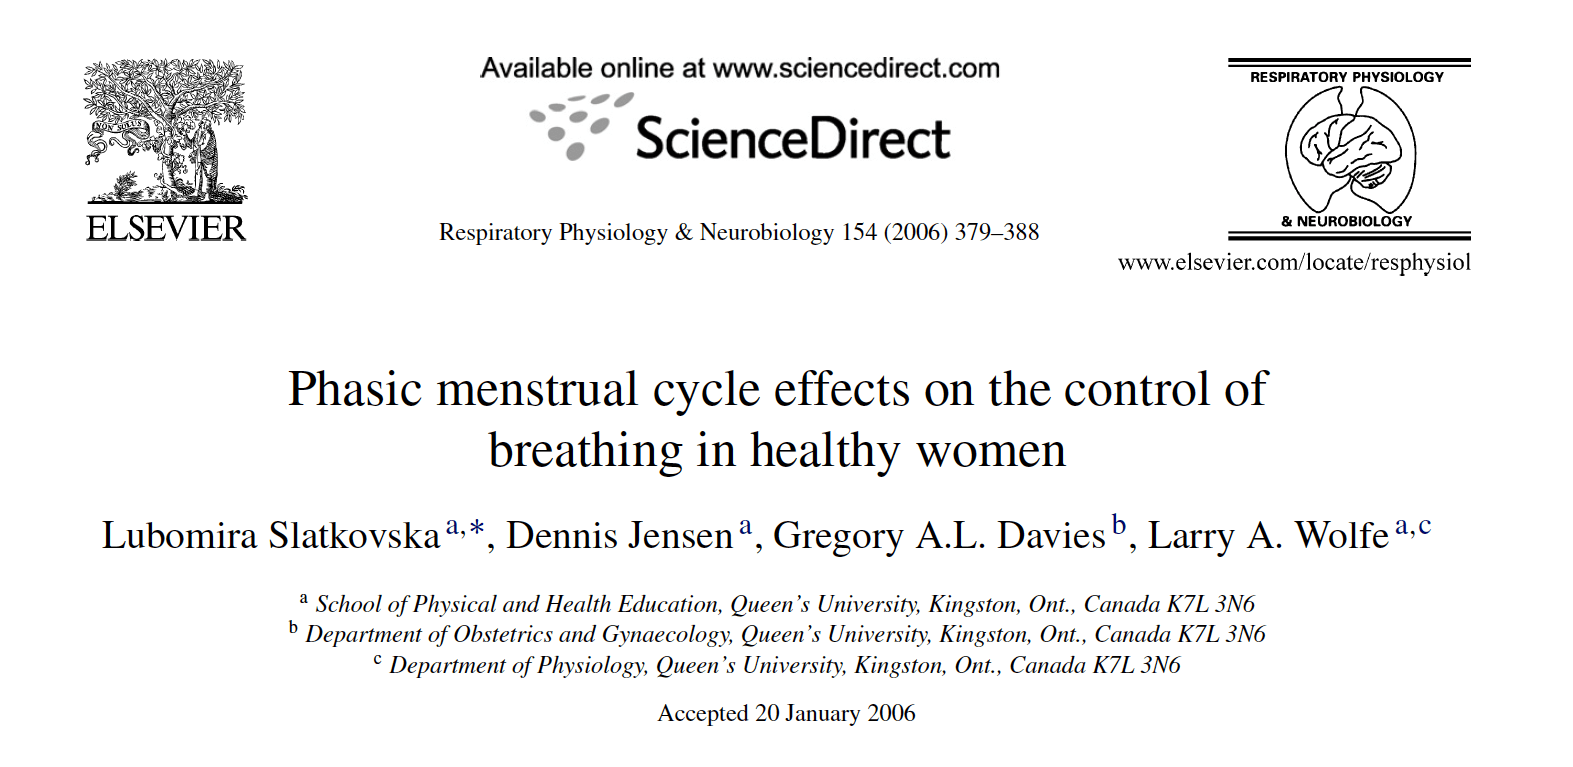 Phasic Menstrual Cycle Effects on the Control of Breathing in Healthy Women